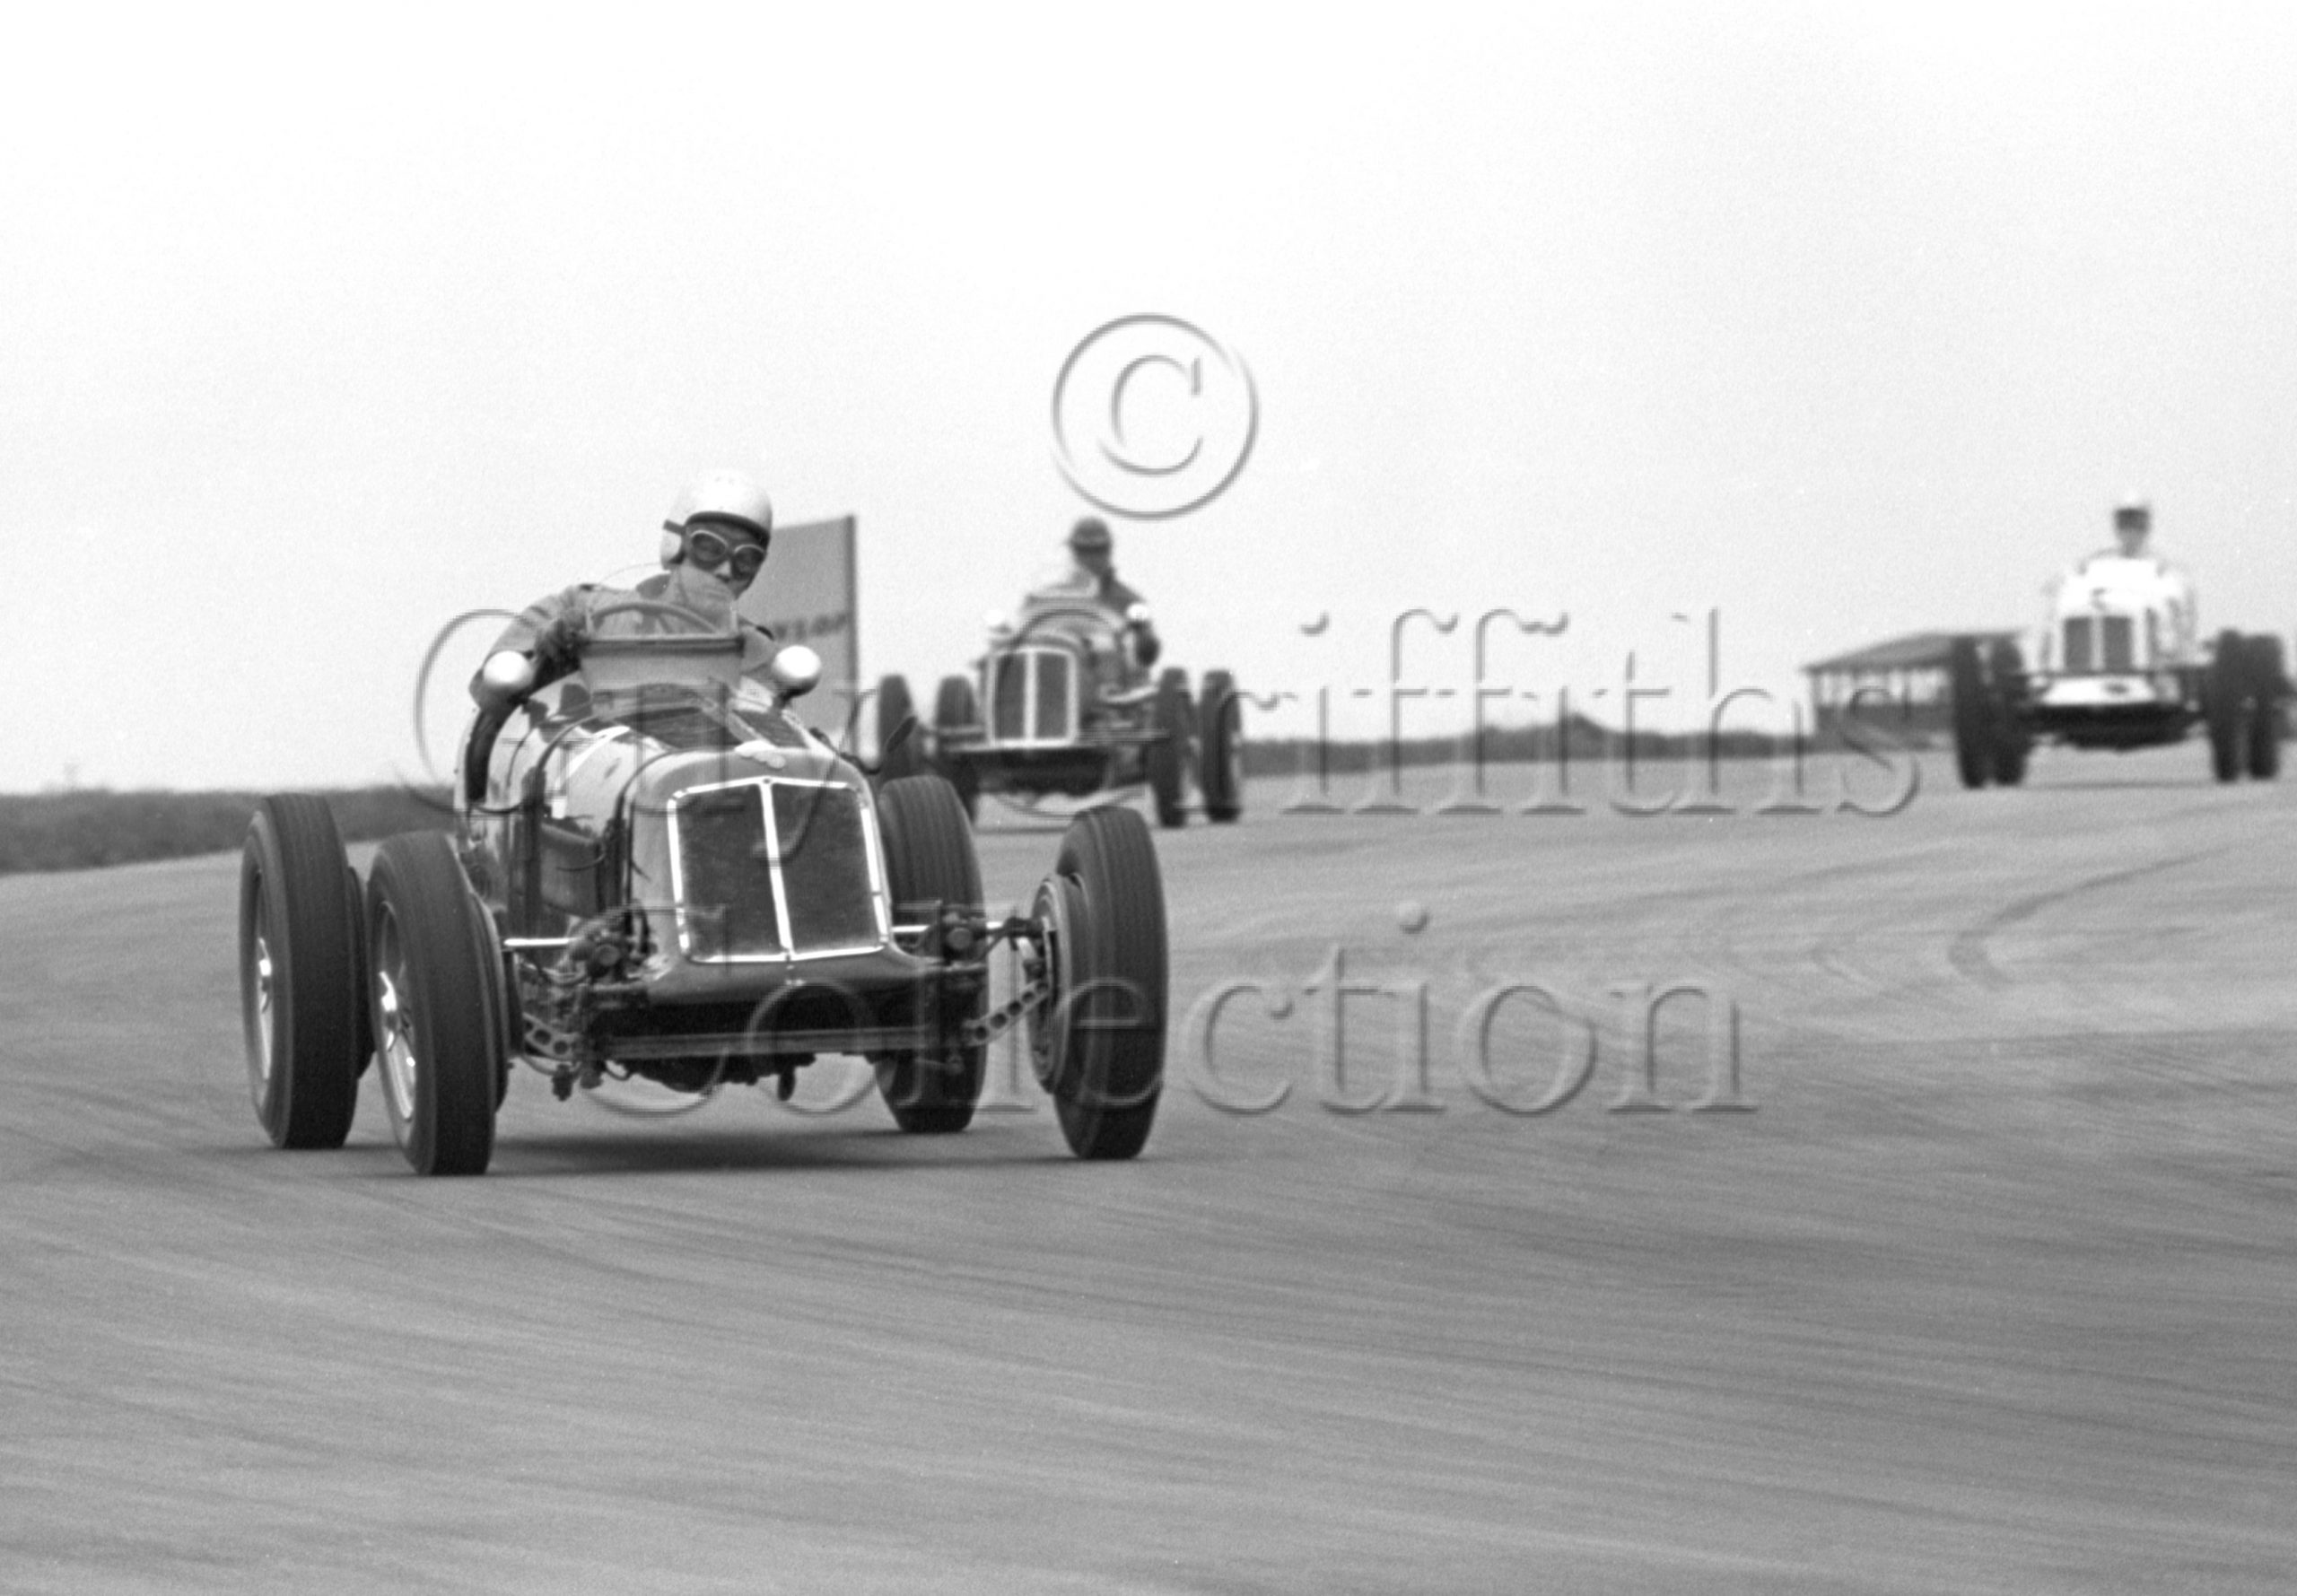 81-843–S-Day–ERA–Silverstone–18-04-1964.jpg - Guy Griffiths Collection